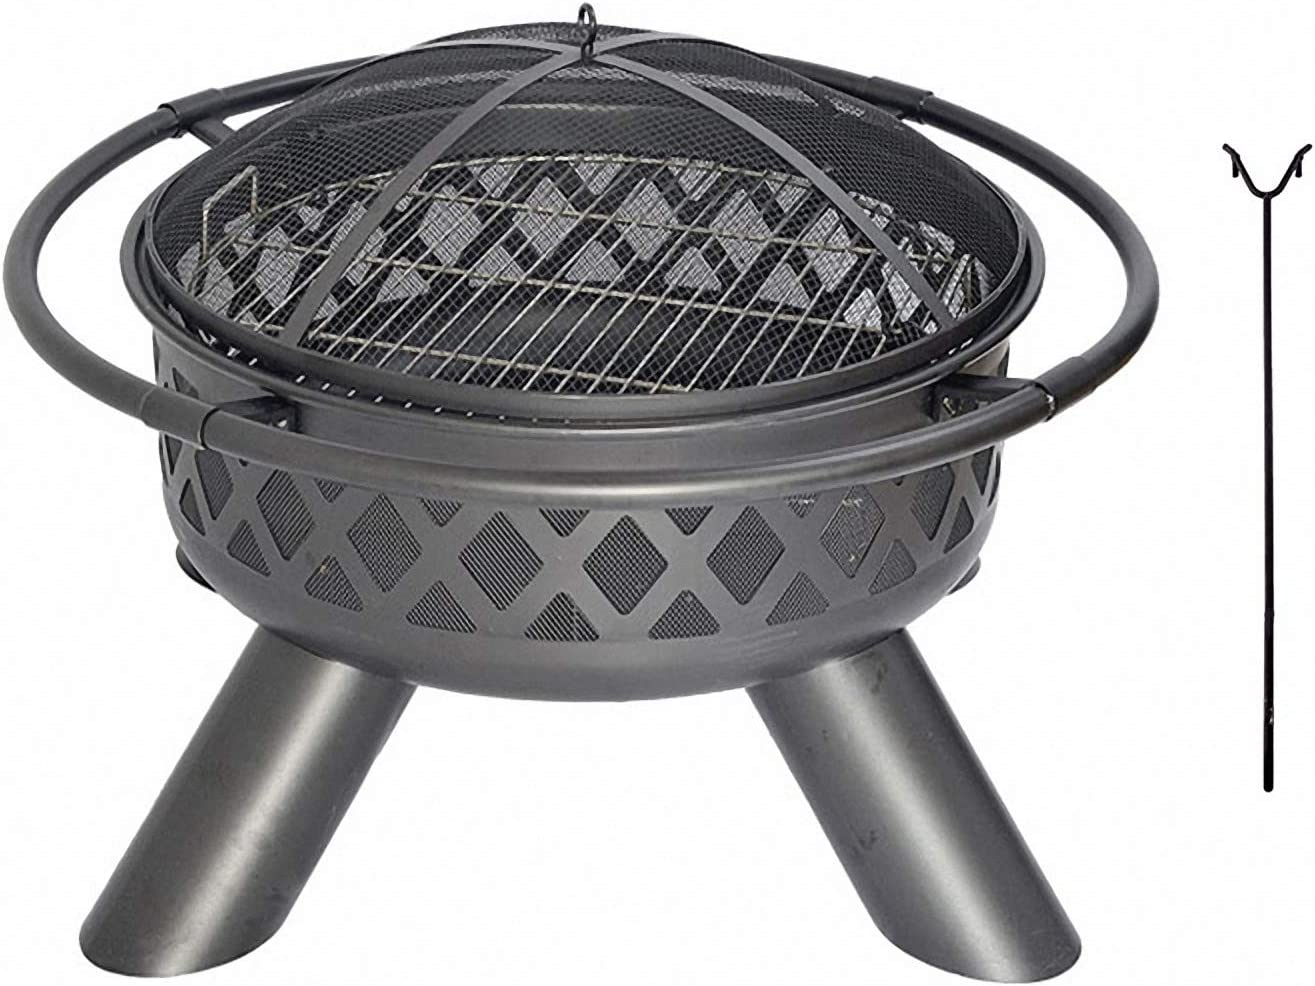 Grill 2021new shipping free shipping Fire Discount mail order Pit Wood 37.5in Out - Burning